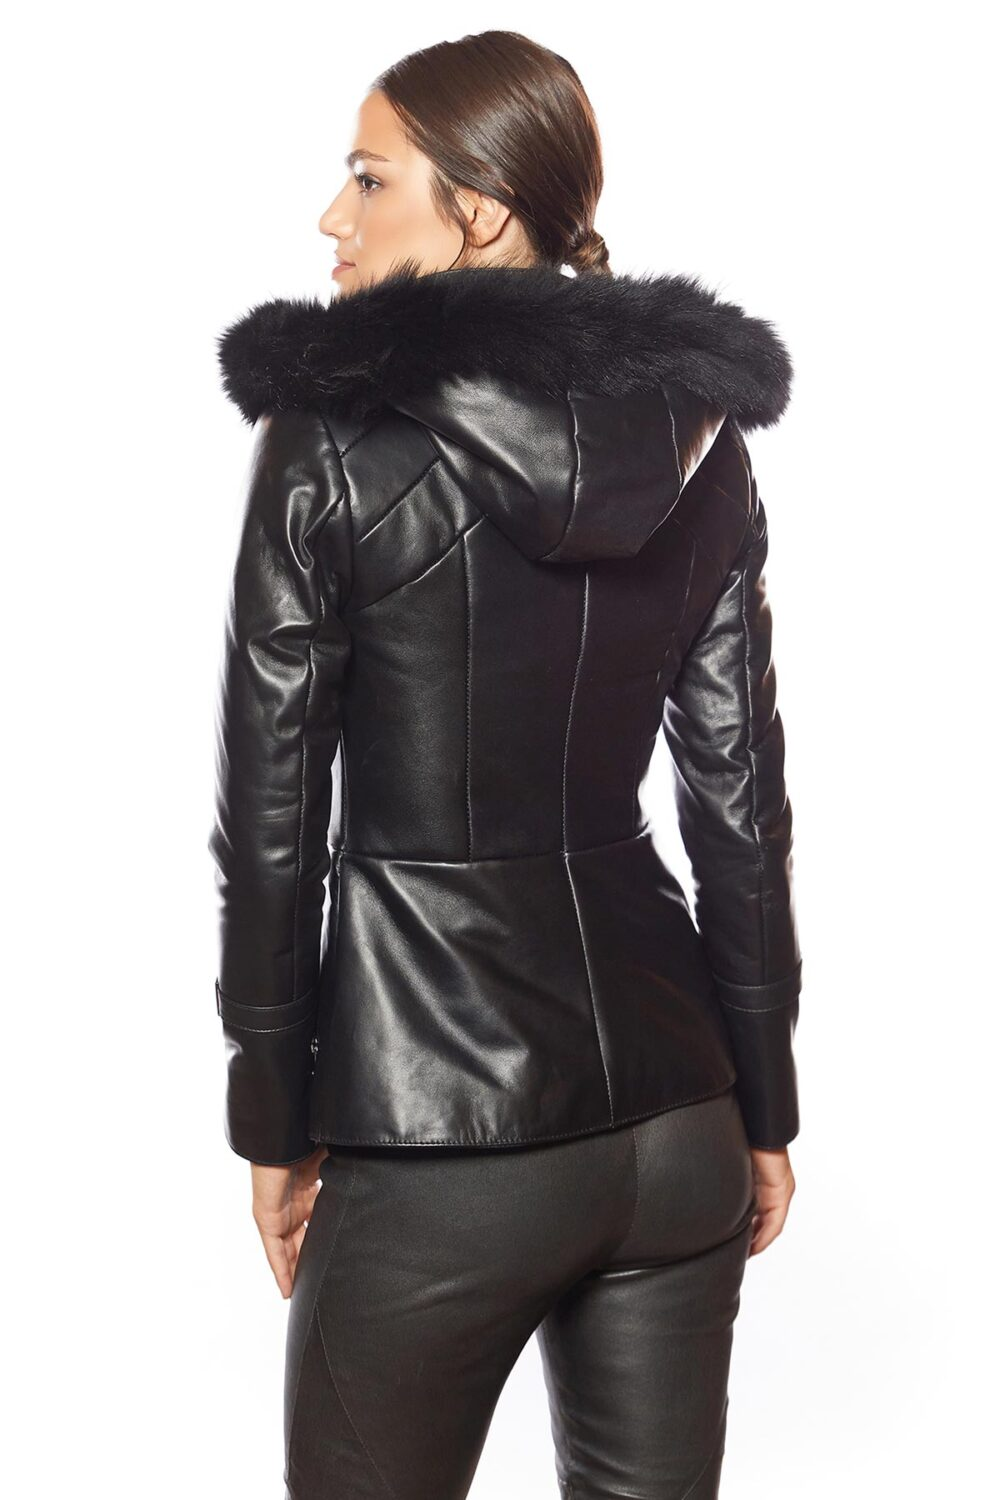 womens black leather jacket with fur collar